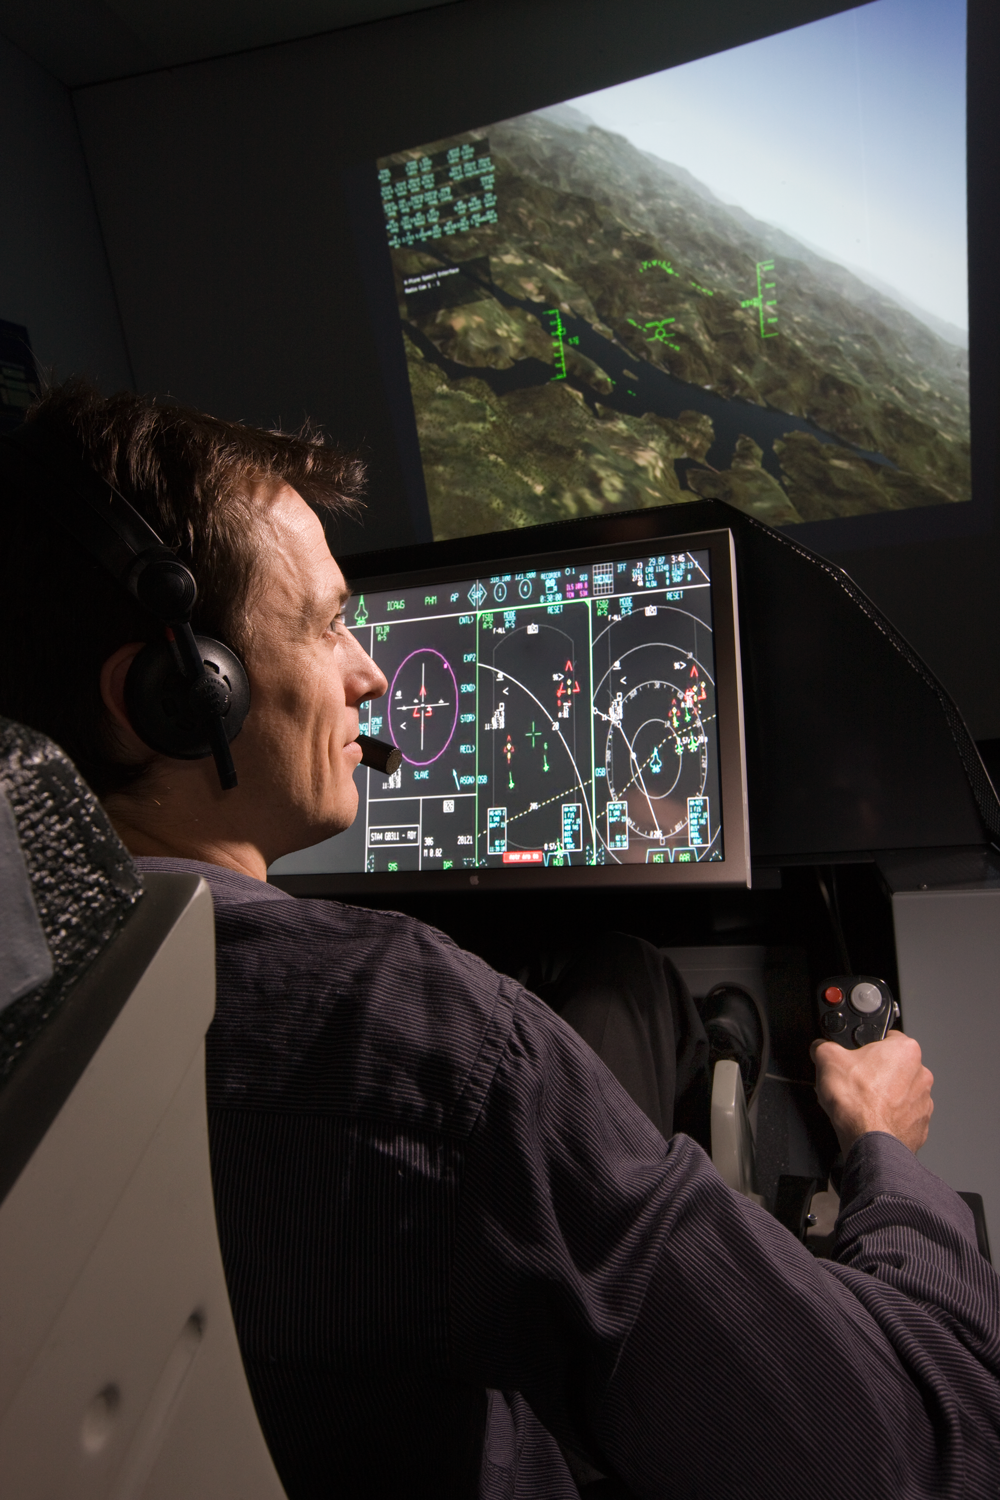 A mock up of the Joint Strike Fighter mission system and cockpit assists DSTO in providing advice and guidance to the ADF on issues such as software and systems architecture throughout the aircraft life and its interoperability between aircraft and across other systems within Australia and with coalition forces.